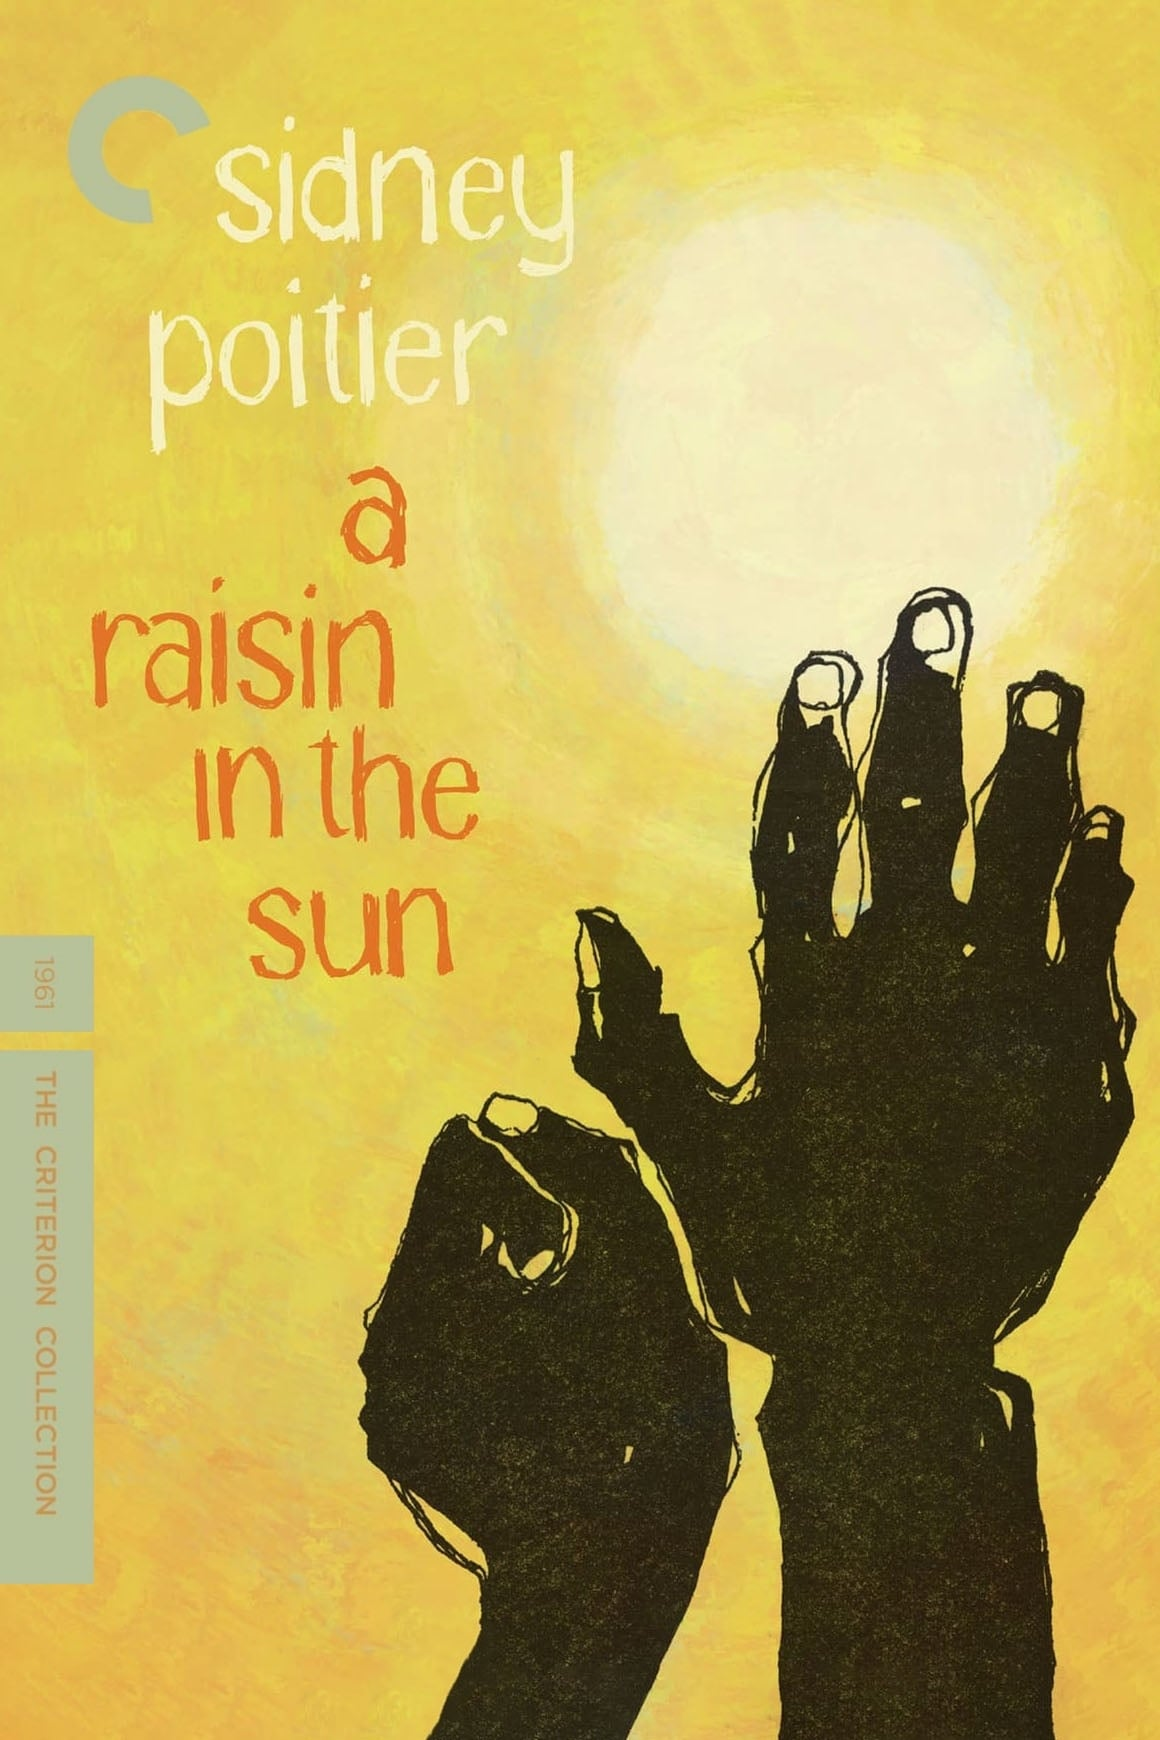 comparing the plays a raisin in the sun An analysis of a raisin in the sun as a play written by an african-american playwright a comparison of the tough decisions in fences by august wilson and a raisin in the sun by lorraine hansbury.